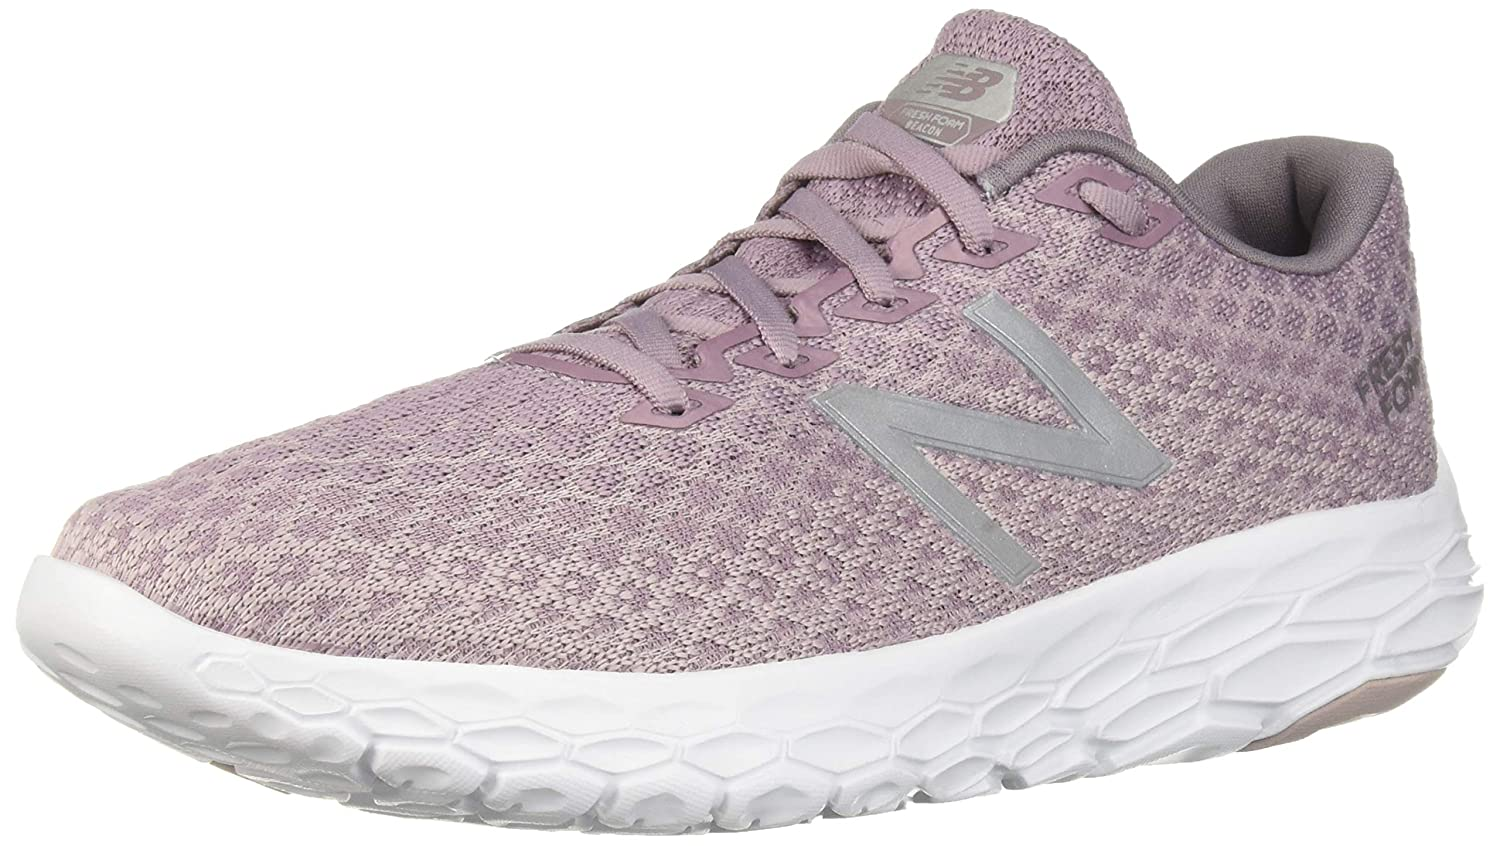 Cashmere Dark Cashmere New Balance Women's Beacon V1 Fresh Foam Running